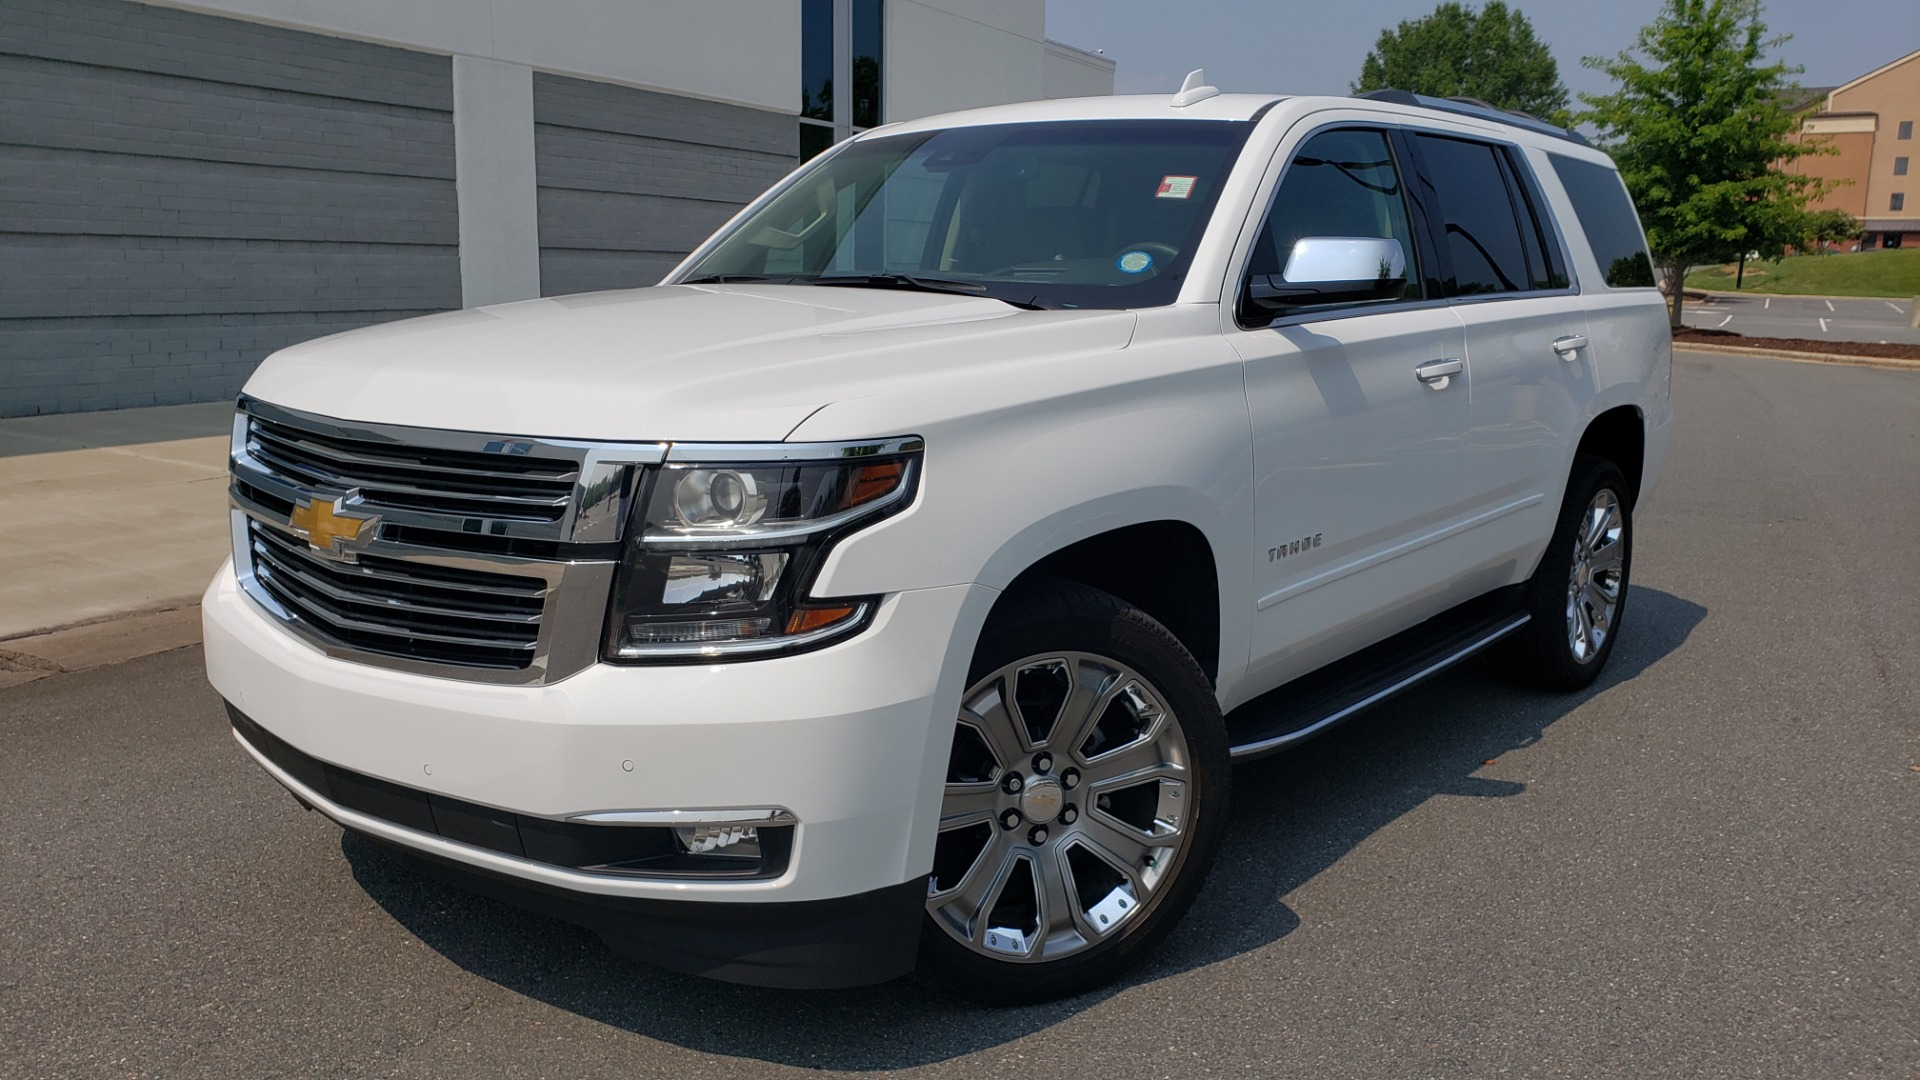 Used 2018 Chevrolet TAHOE PREMIER 4WD / NAV / SUNROOF / BOSE / 3-ROW / HUD / REARVIEW for sale $63,995 at Formula Imports in Charlotte NC 28227 1